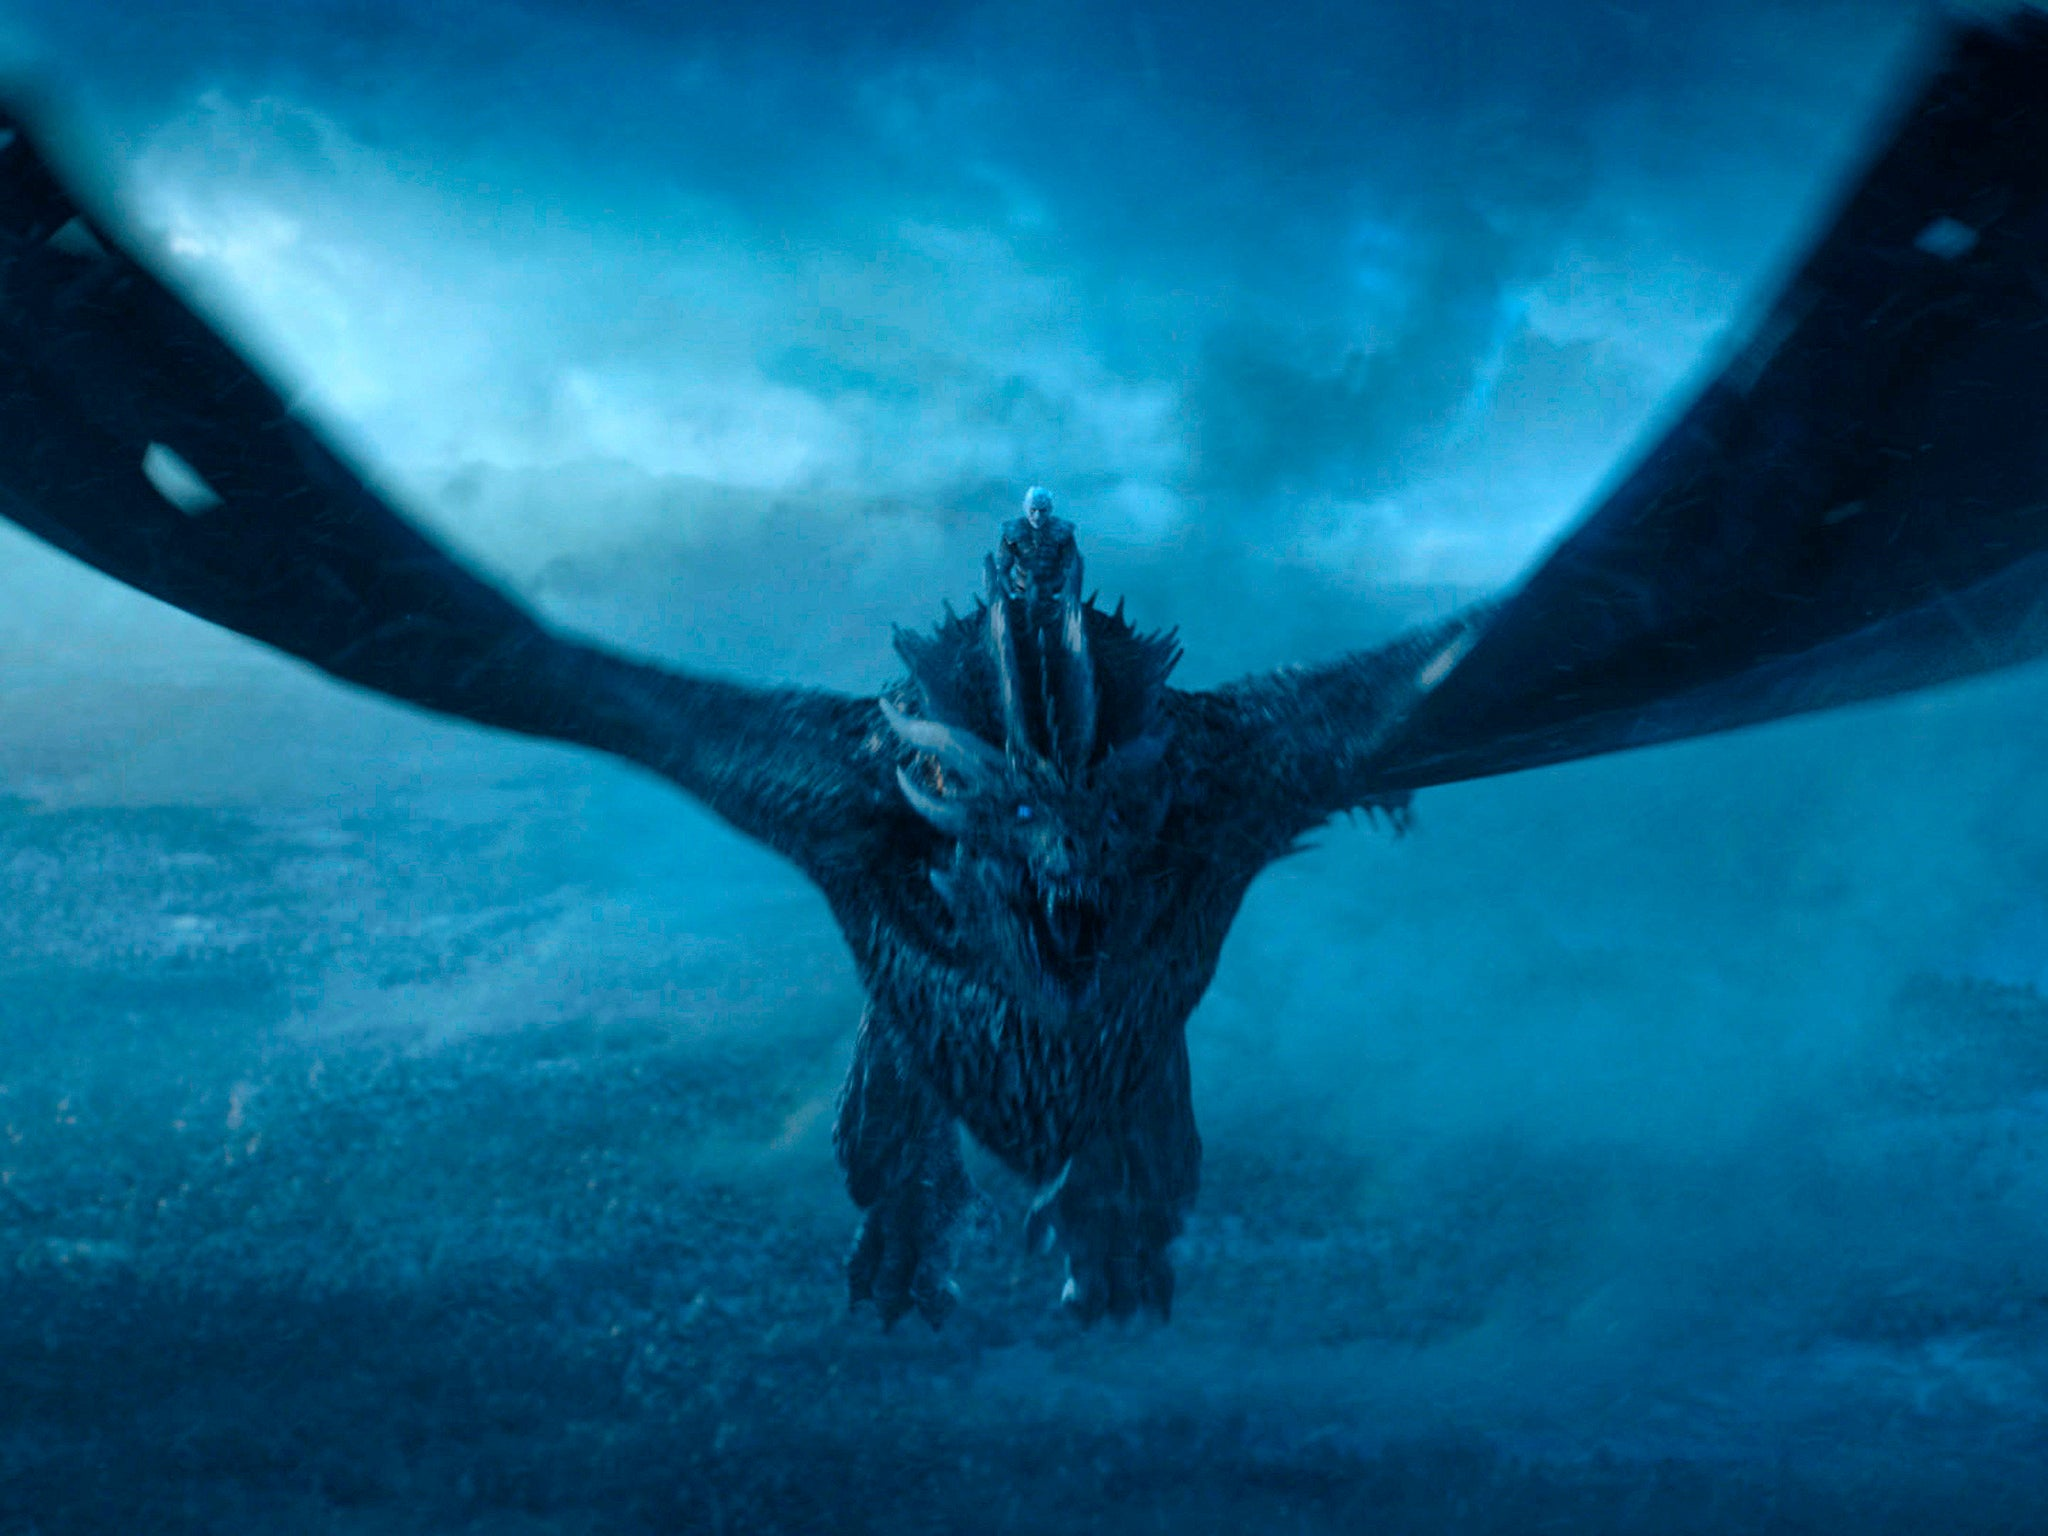 Game of Thrones Season 8 theory: Where is the night king